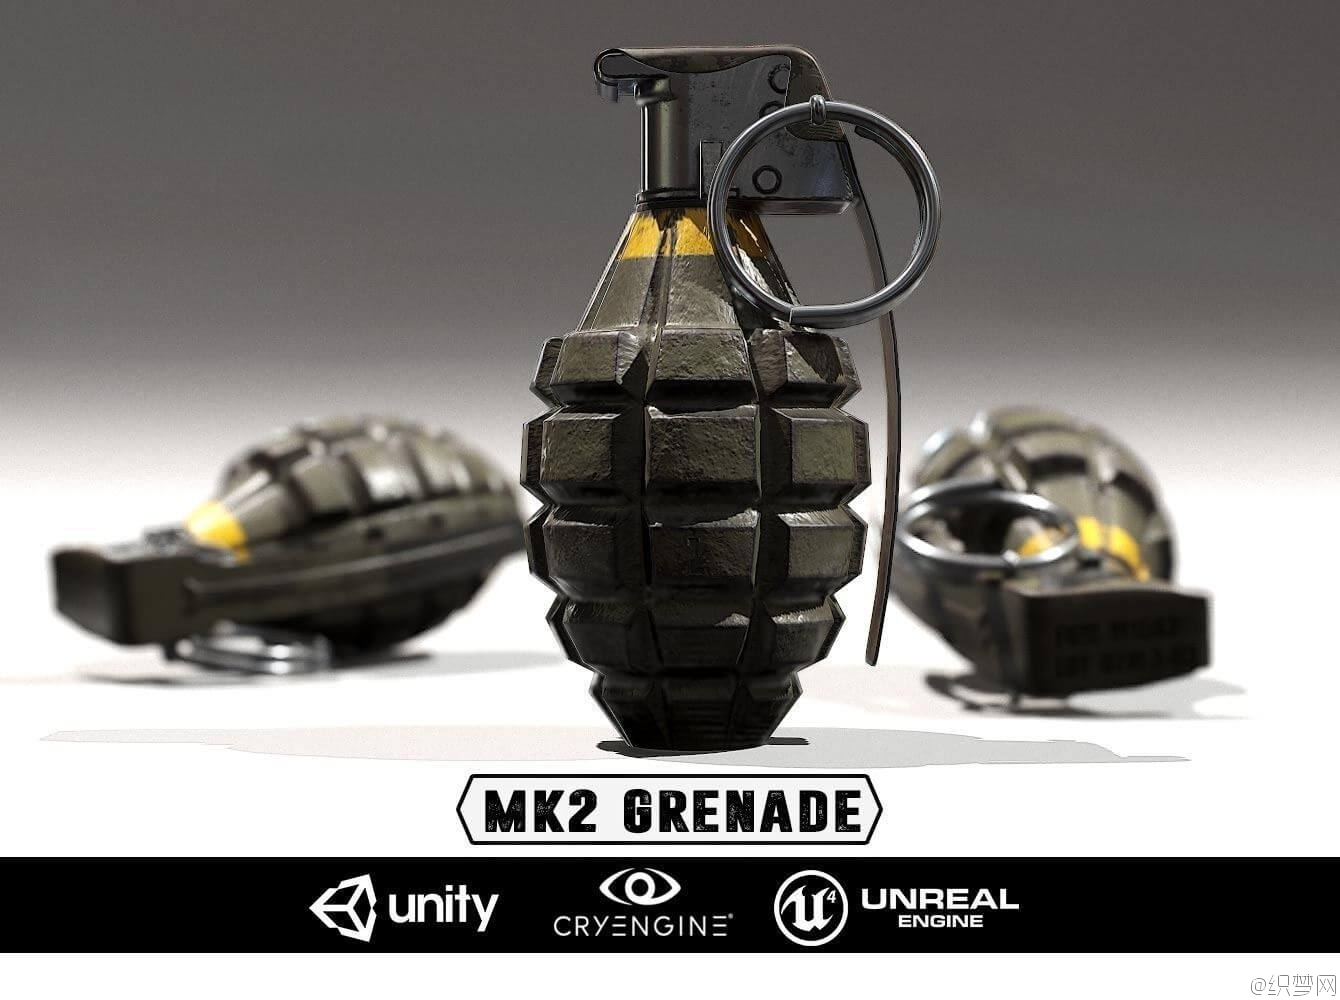 MK2手雷3D模型及纹理贴图下载 - MK2 Grenade - Models and Textures